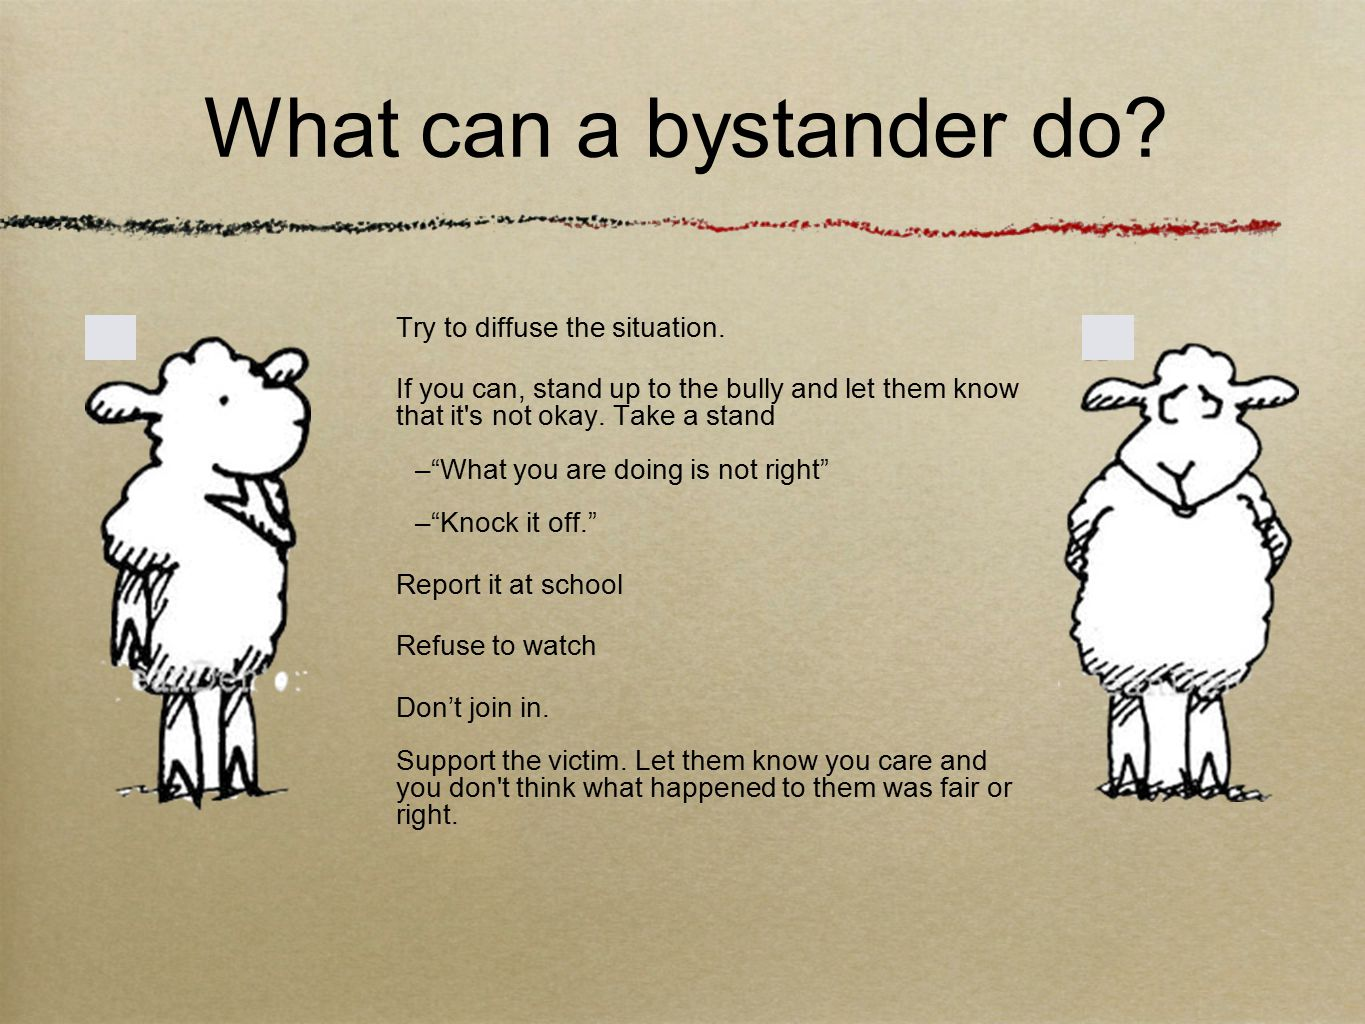 What can a bystander do. Try to diffuse the situation.